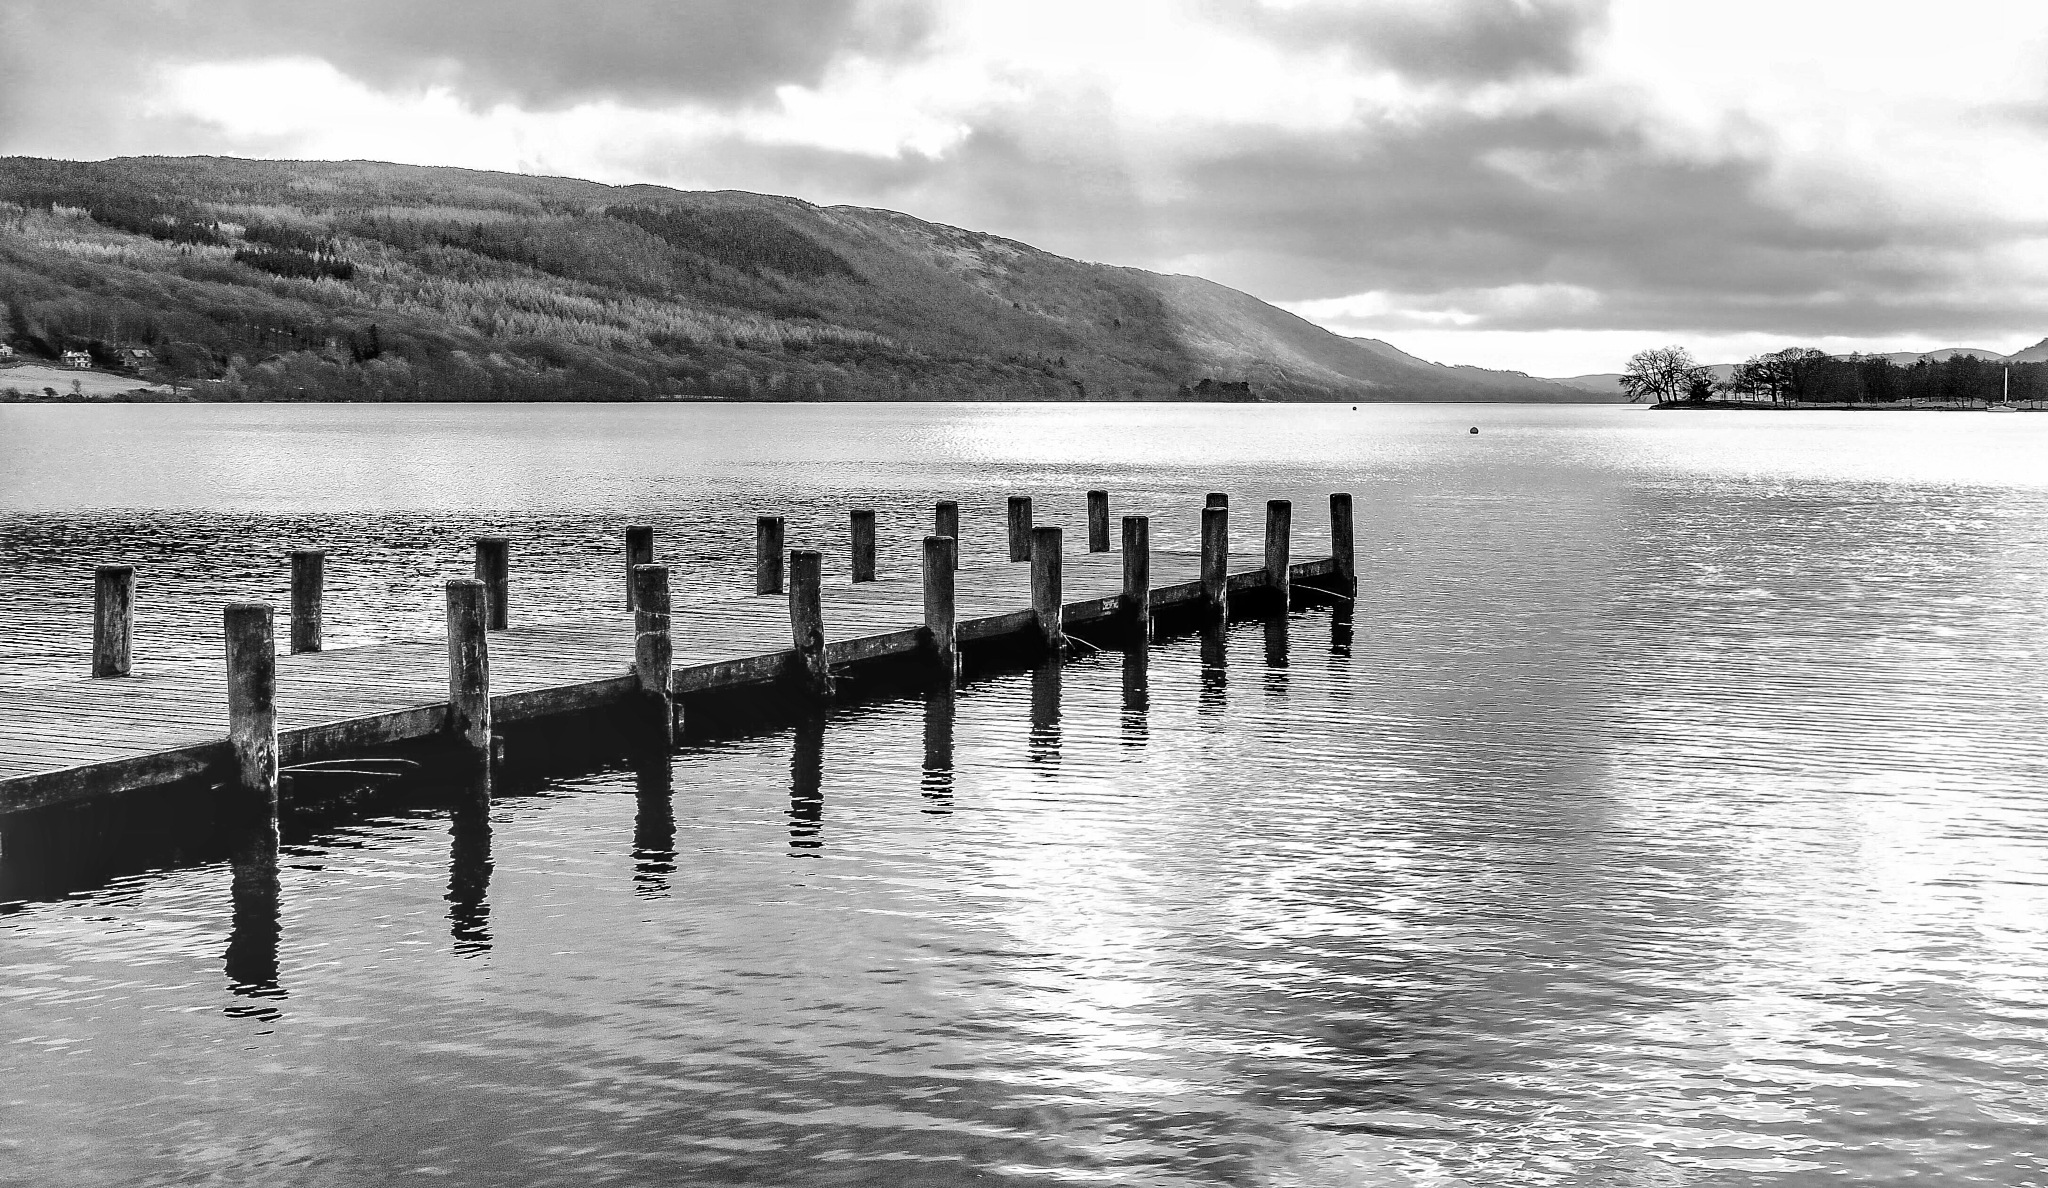 Coniston Water Cumbria uk...bw090601 by Michael jjg